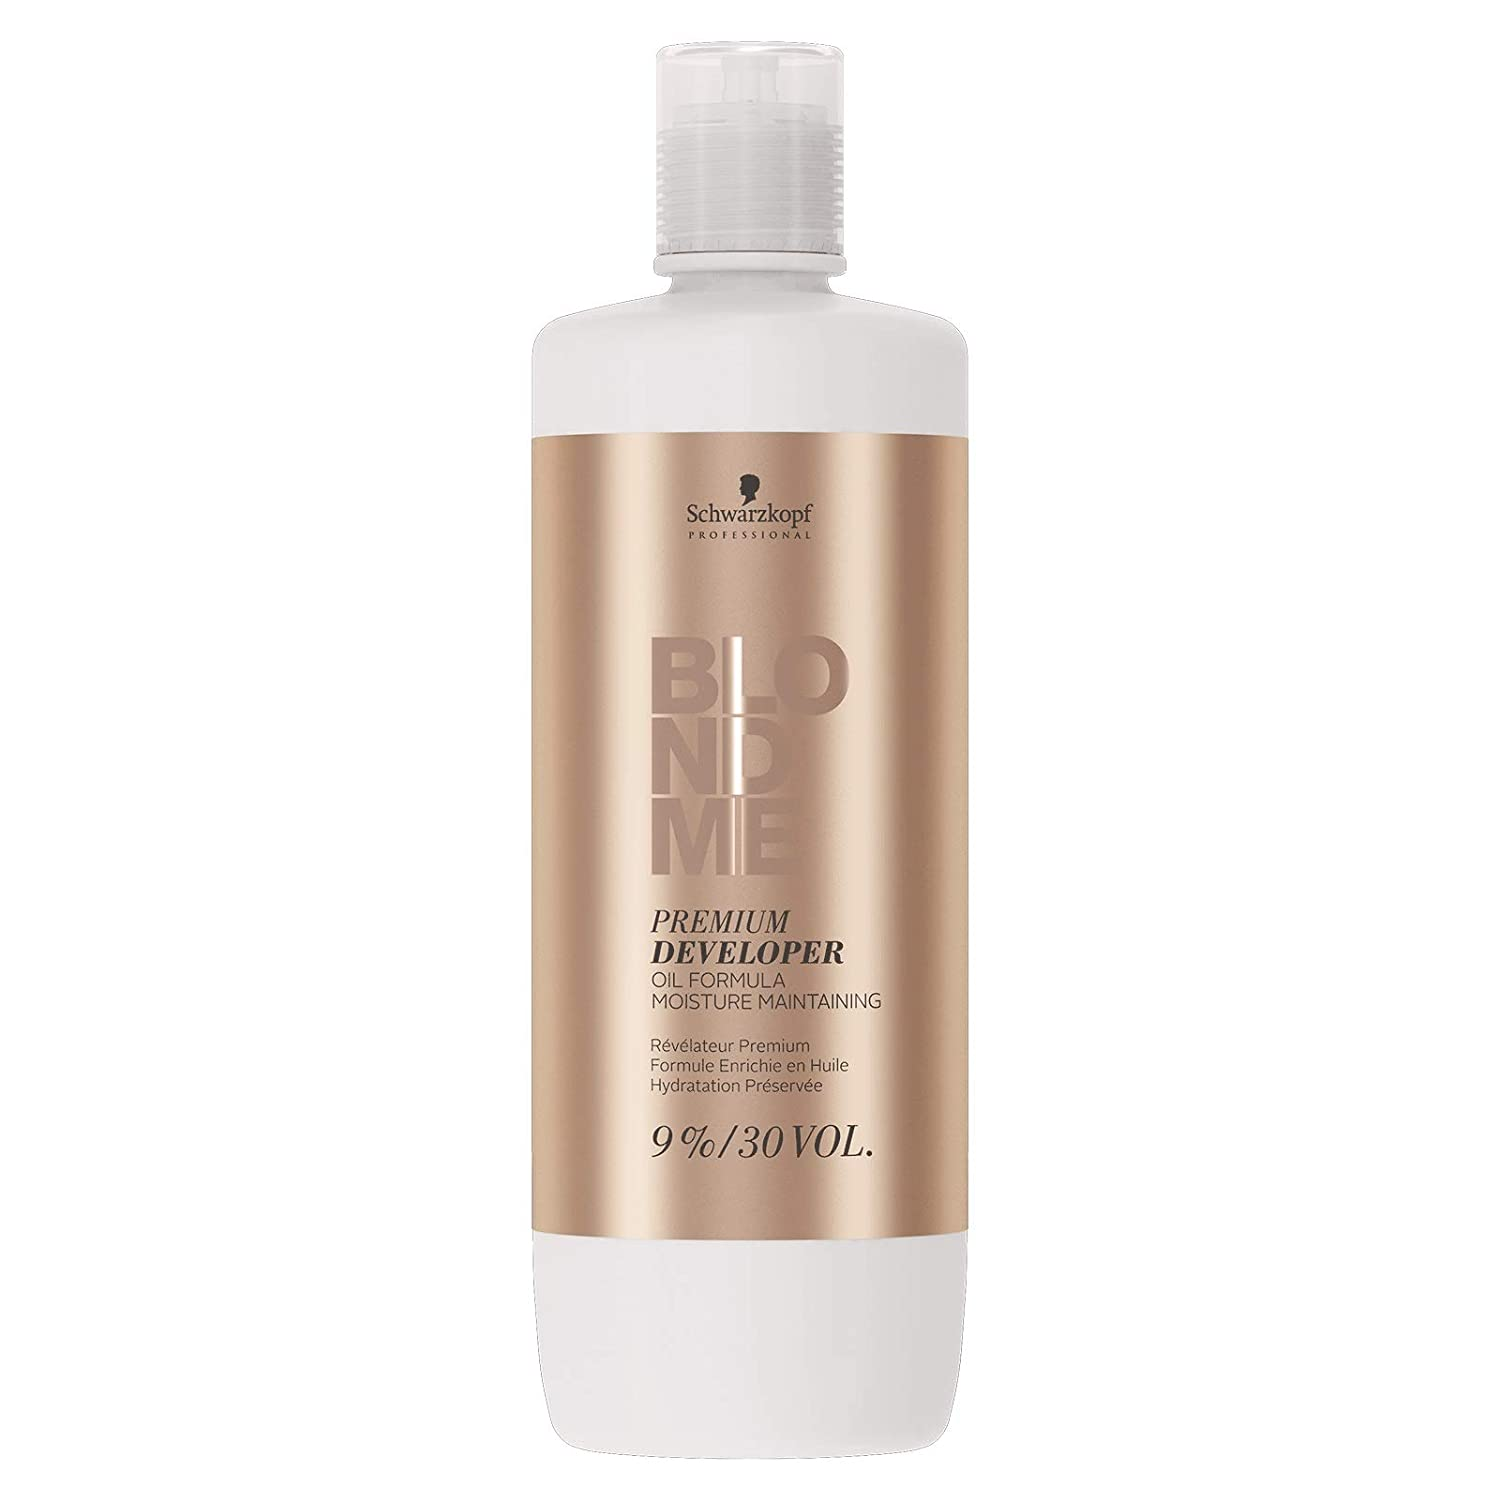 Schwarzkopf Professional Blonde Me Premium Developer Oil Formula 33.8 oz/1000ml (9% ; 30 Volume)